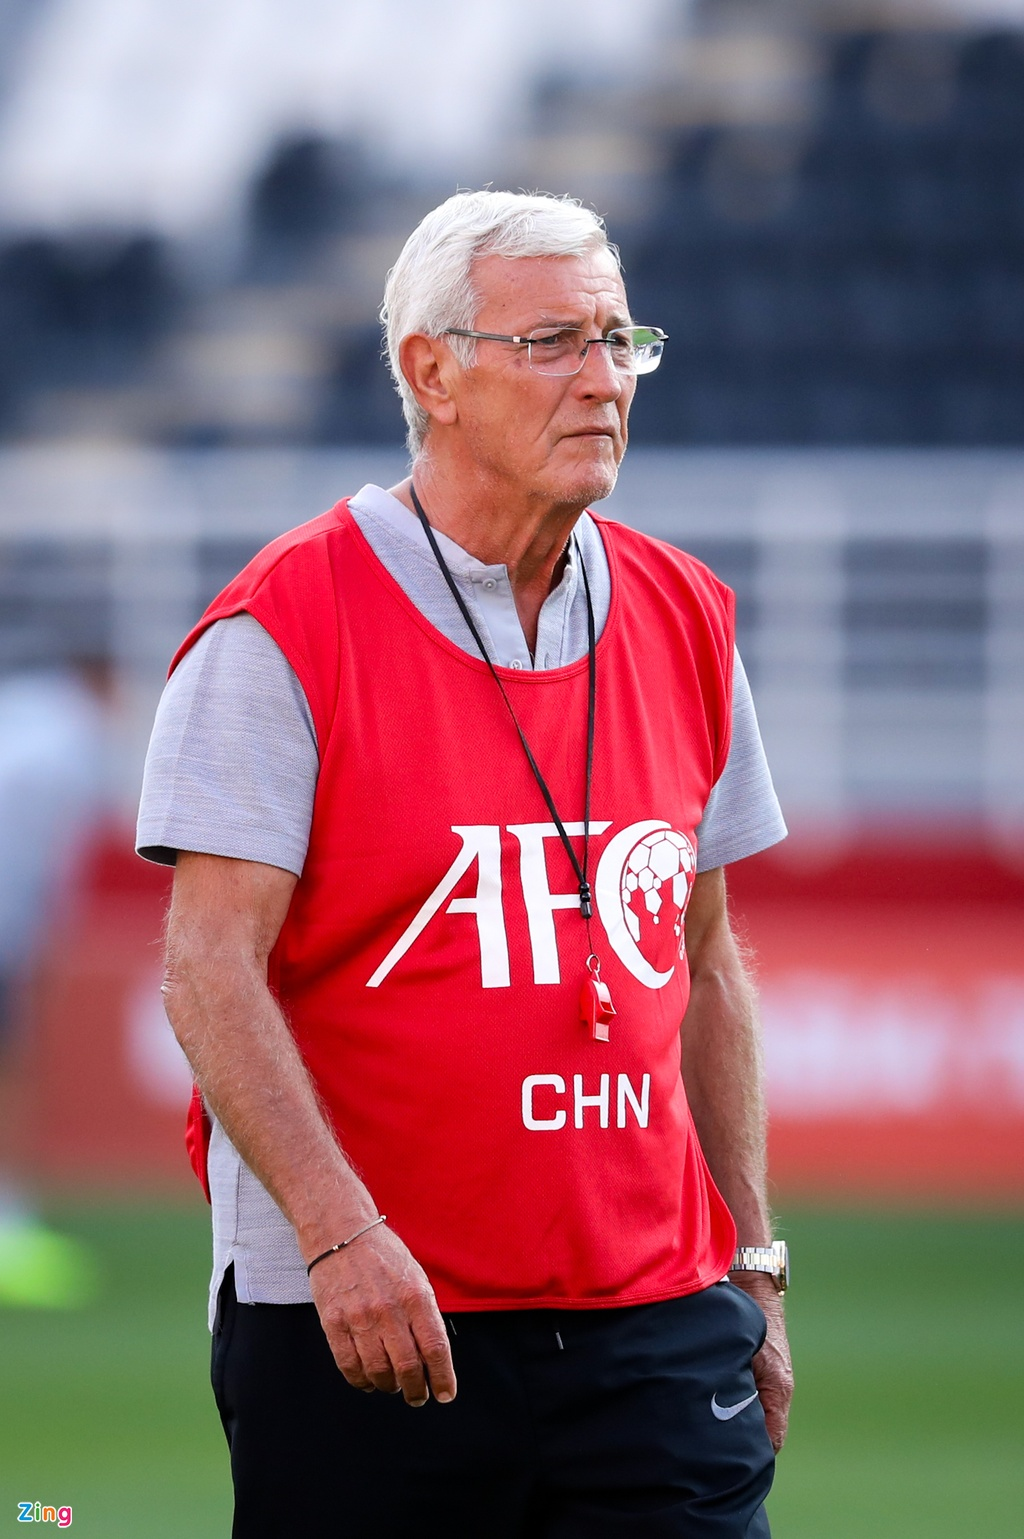 Marcello Lippi cong lung xep dung cu tap luyen anh 2